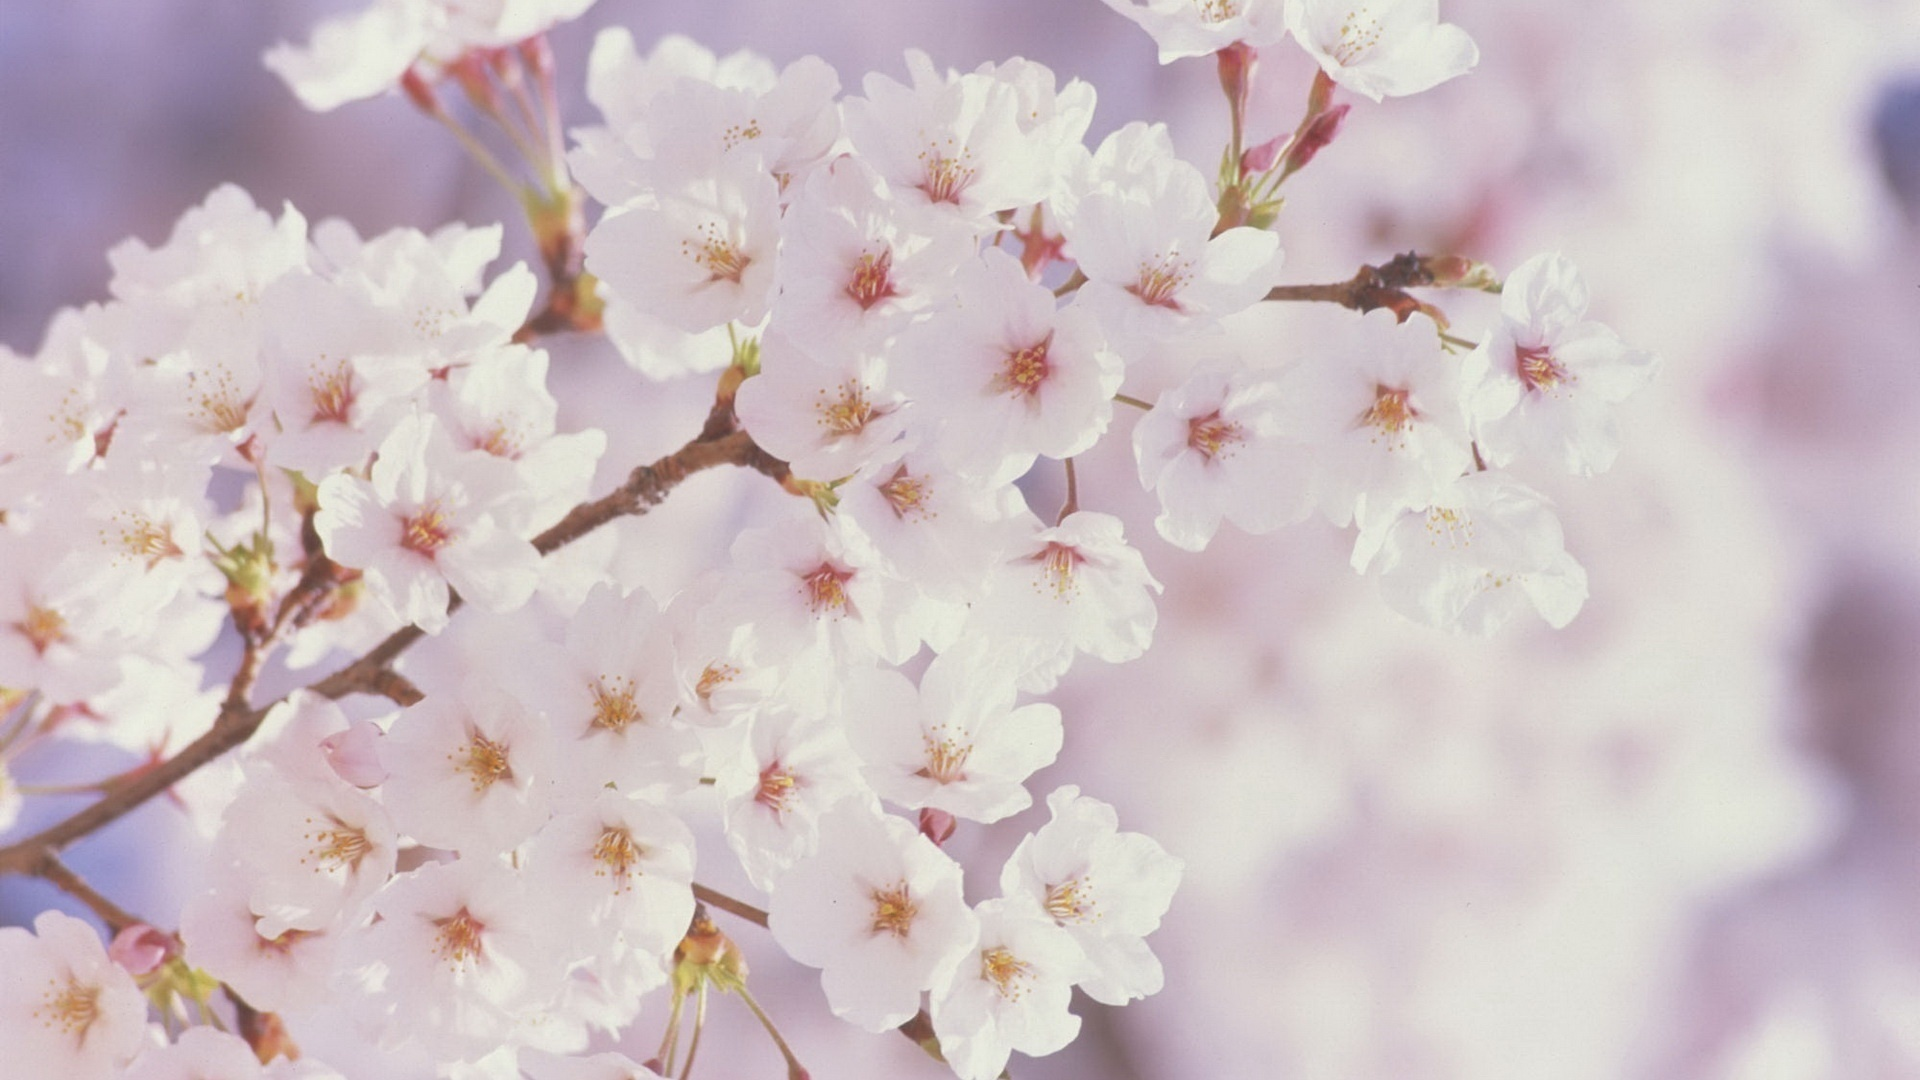 Spring images spring flowers hd wallpaper and background photos spring images spring flowers hd wallpaper and background photos mightylinksfo